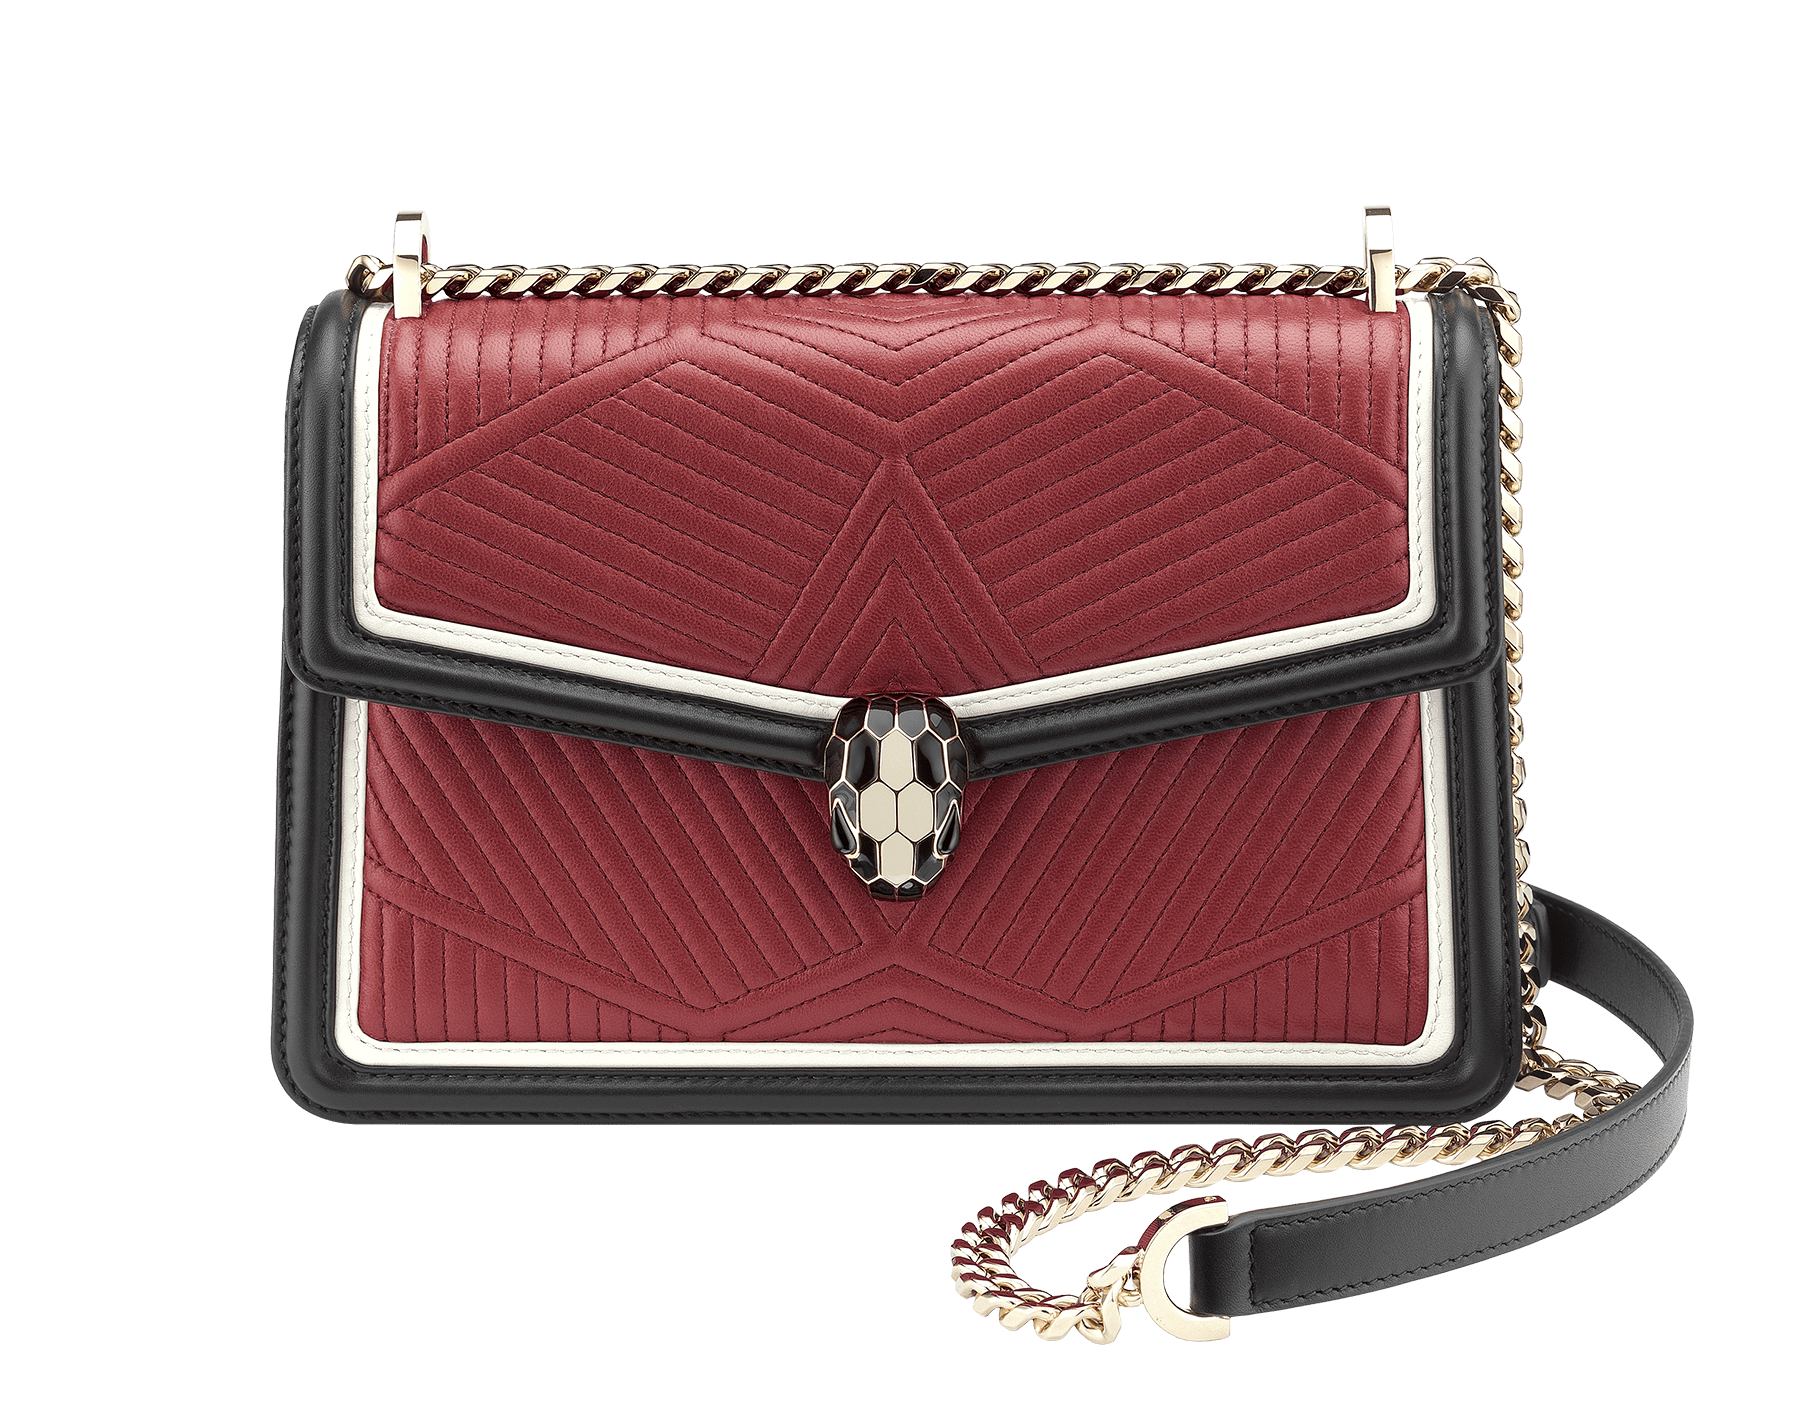 Shoulder bag Serpenti Forever featuring a Framed Quilted motif in roman garnet nappa and black smooth calf leather. Brass light gold plated tempting snake head closure in black and white enamel, with eyes in black onyx. 286628 image 1